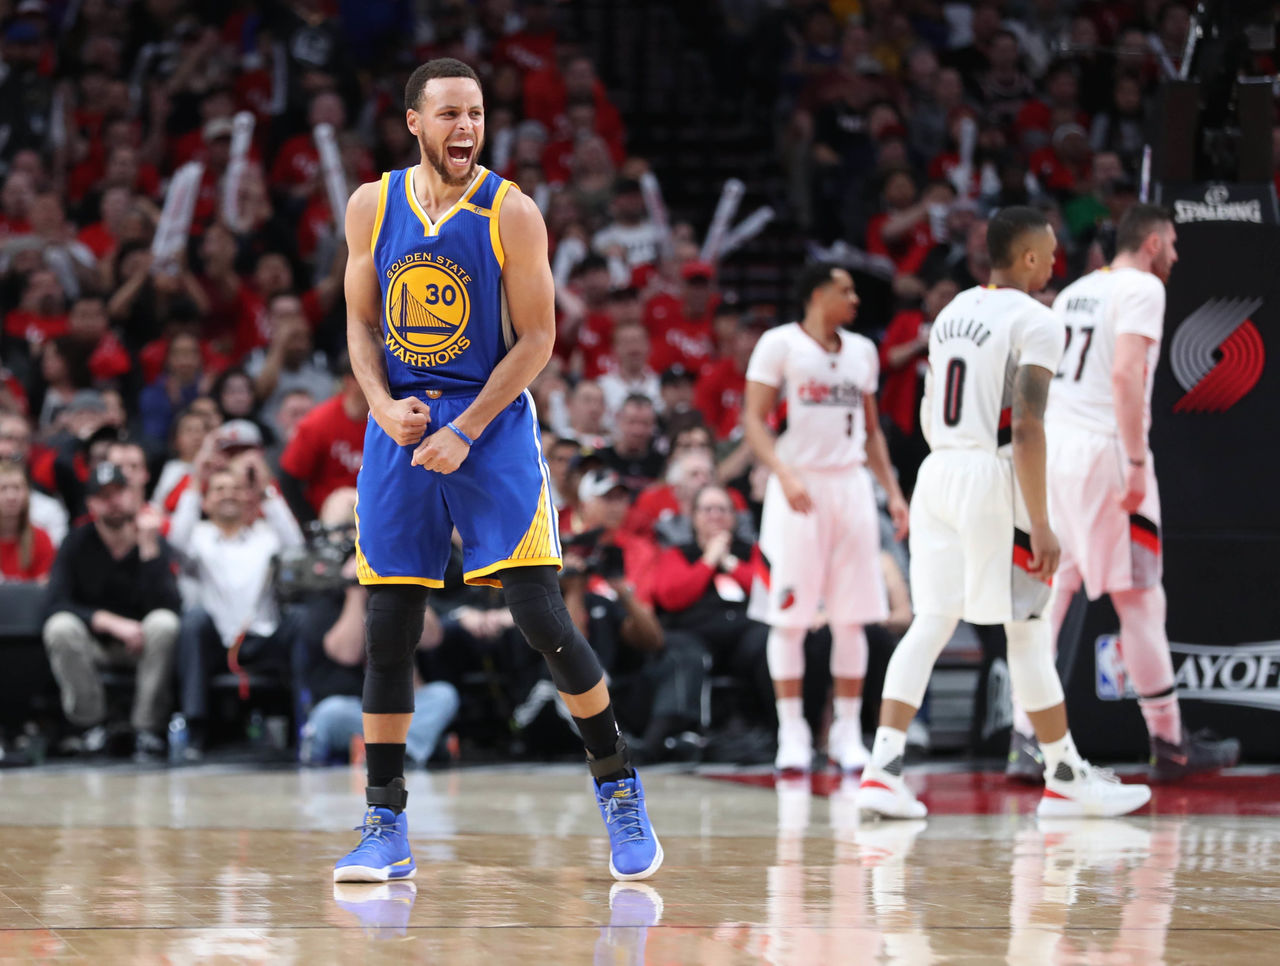 Cropped 2017 04 23t051225z 1301173144 nocid rtrmadp 3 nba playoffs golden state warriors at portland trail blazers